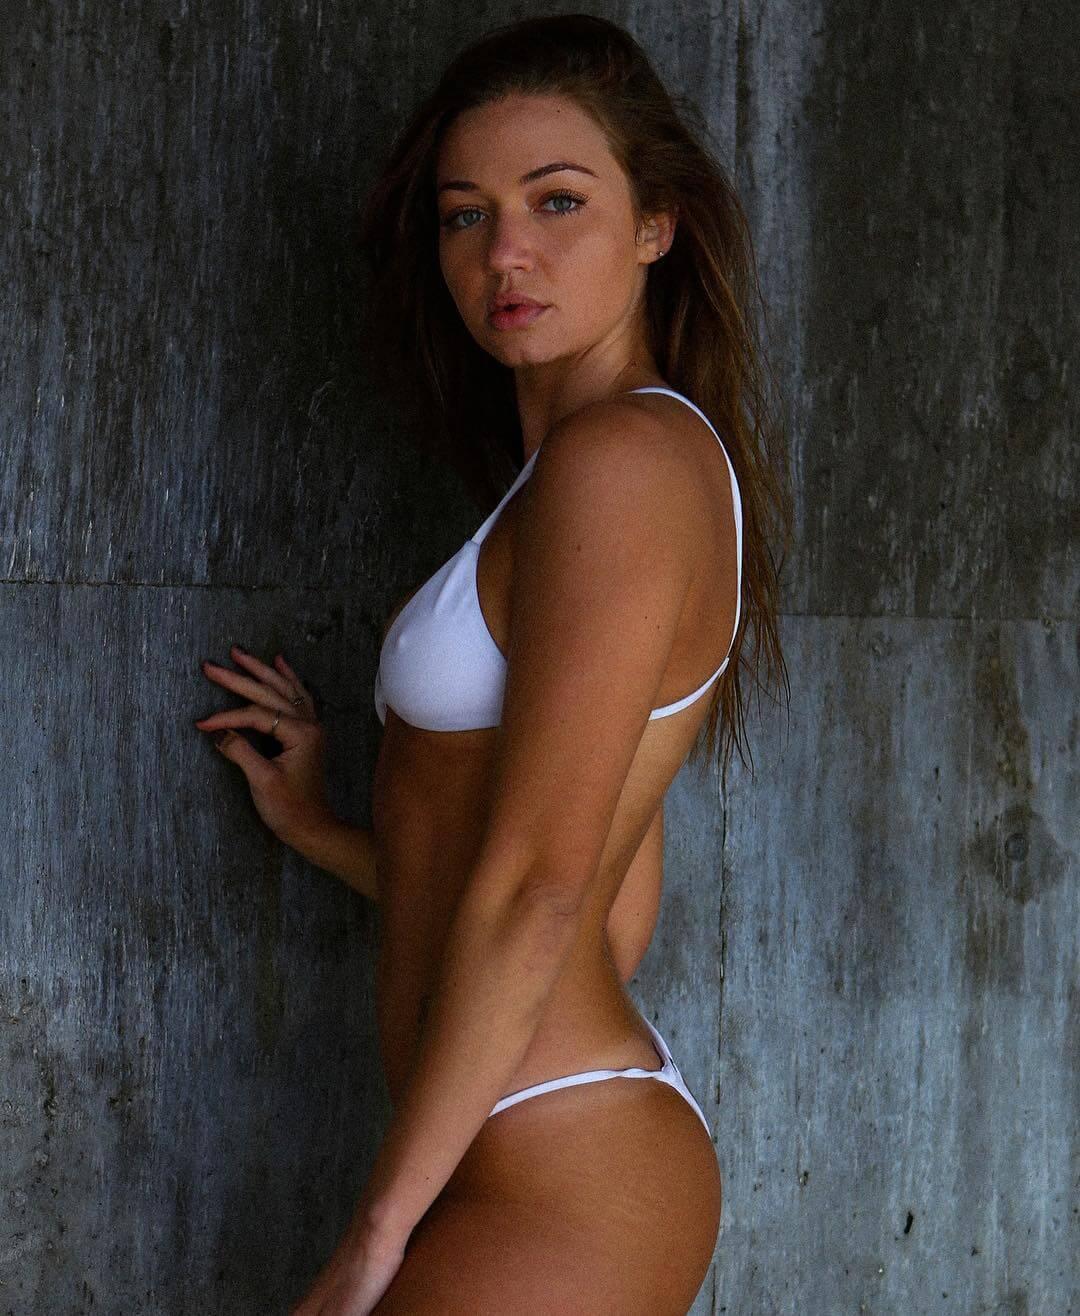 erika costell too hot